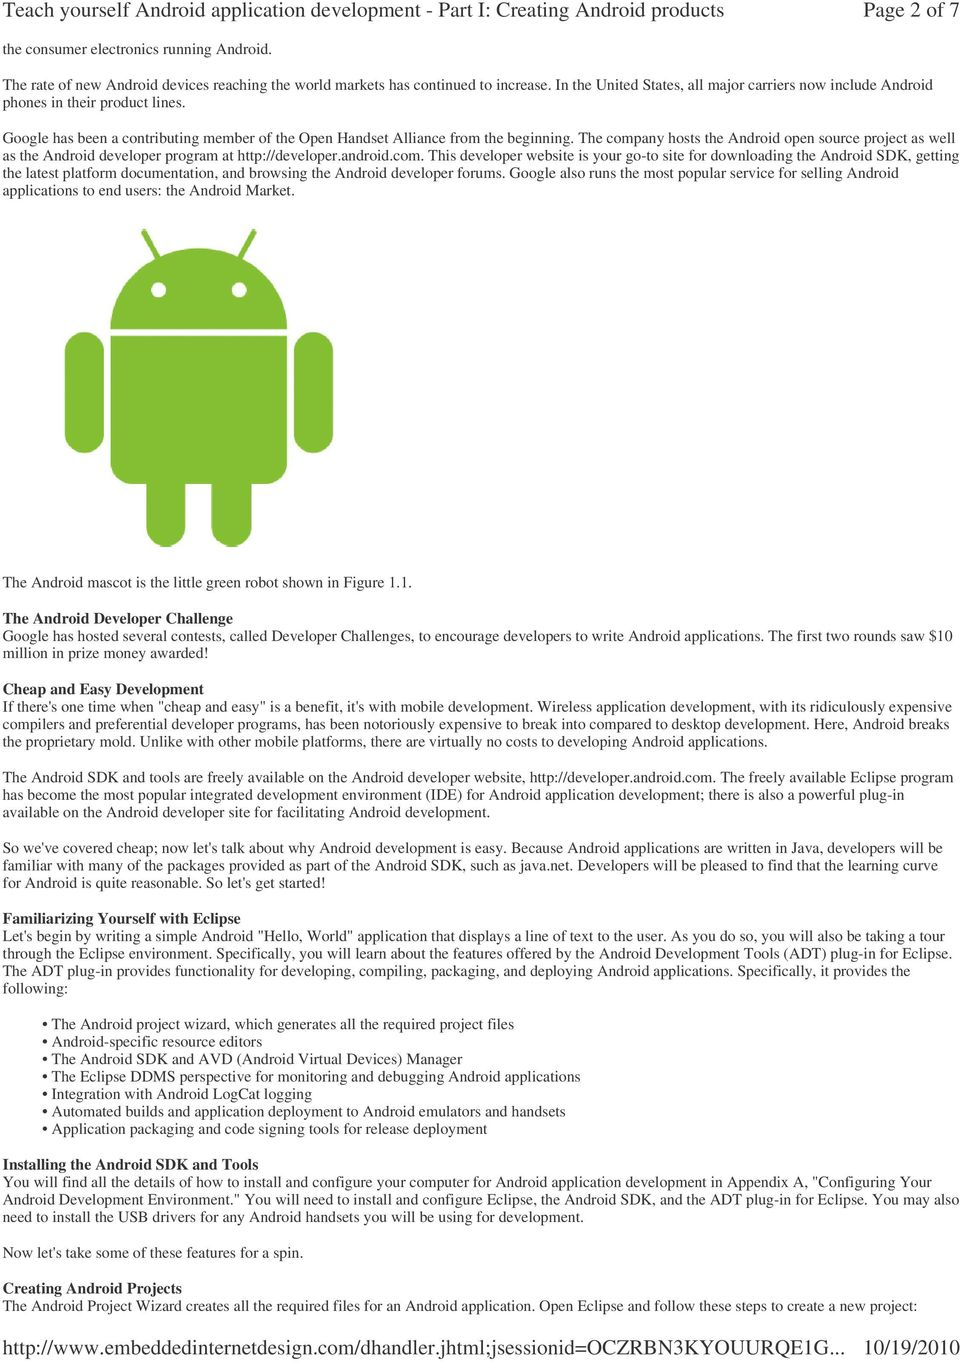 Googe has been a contributing member of the Open Handset Aiance from the beginning. The company hosts the Android open source project as we as the Android deveoper program at http://deveoper.android.